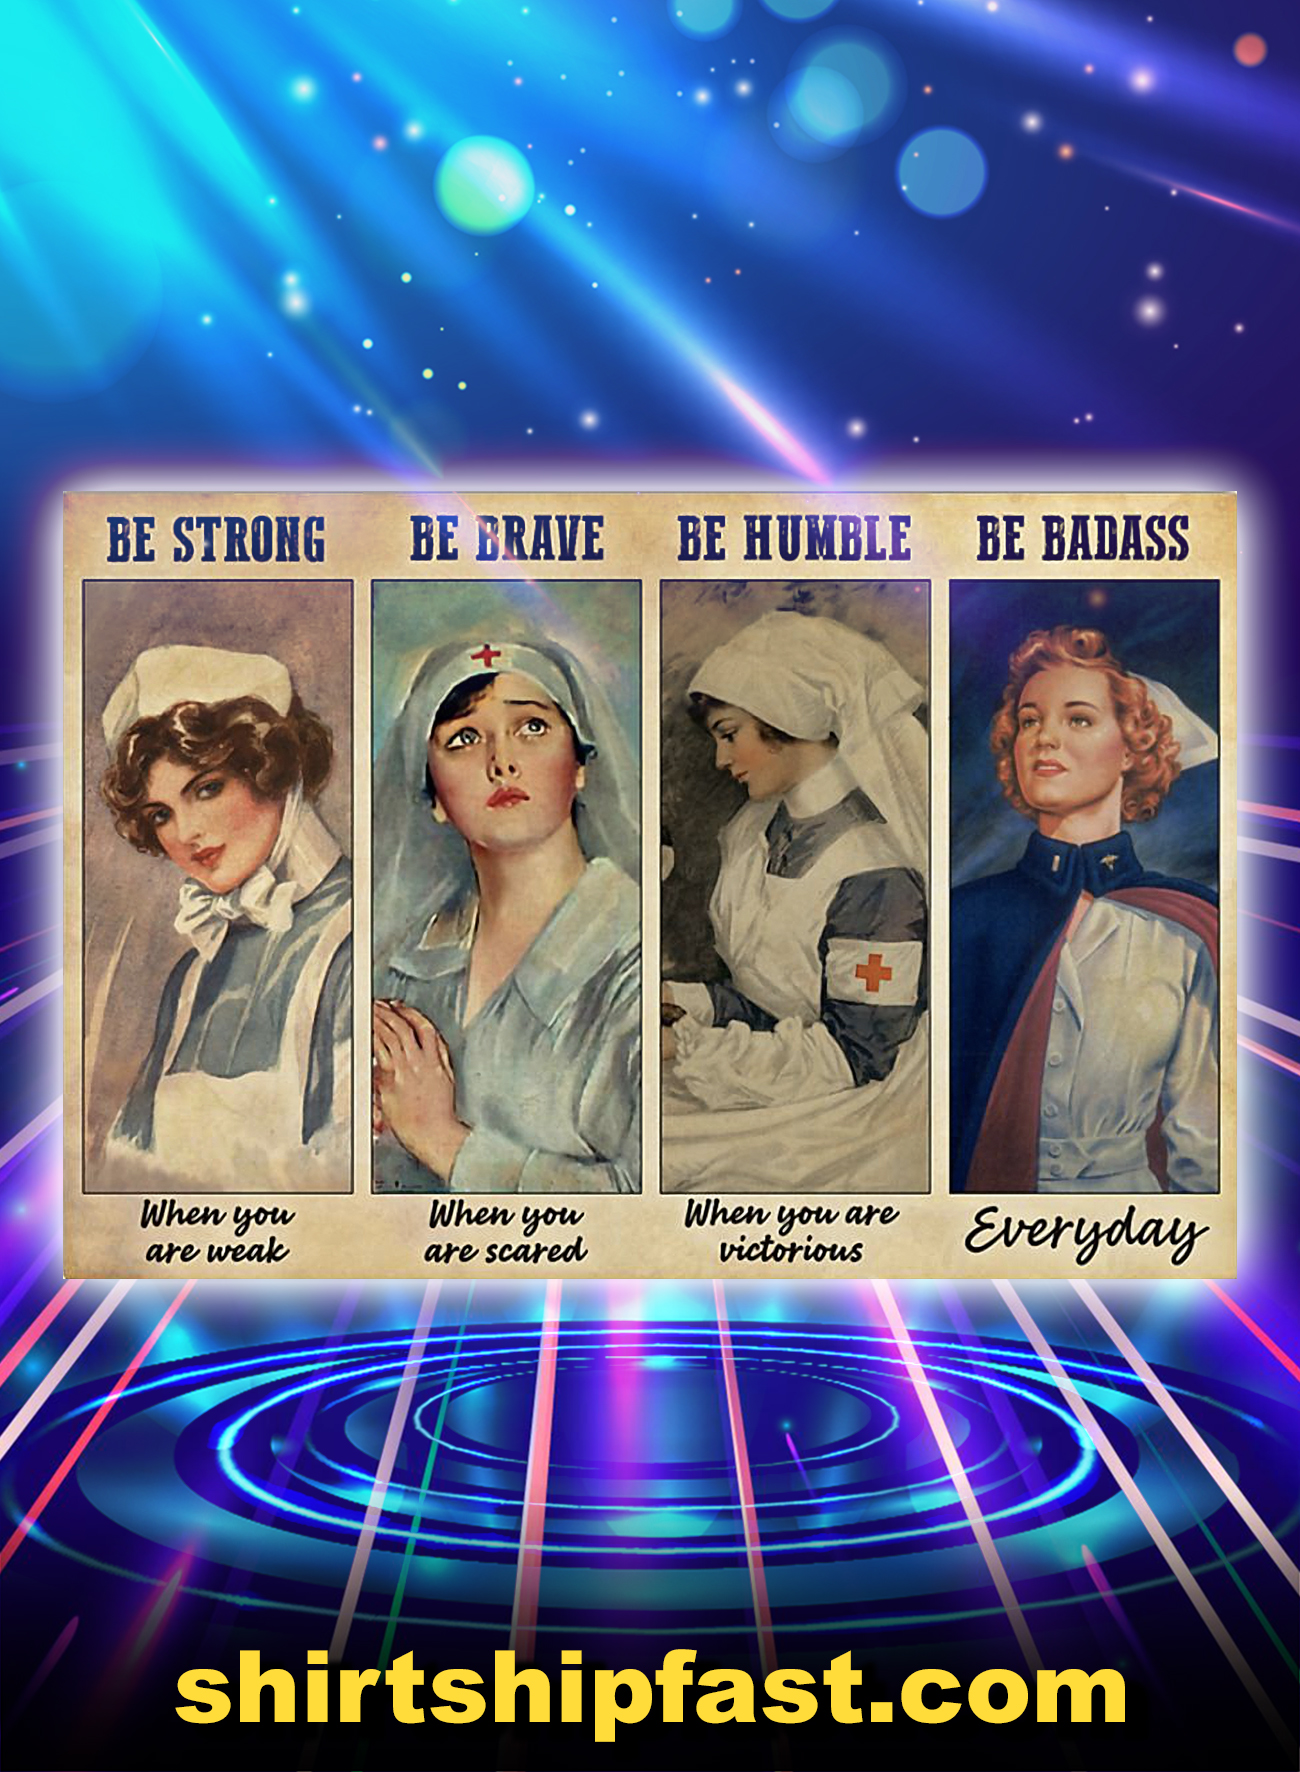 OFFICIAL NURSES BE STRONG BE BRAVE BE HUMBLE BE BADASS POSTER